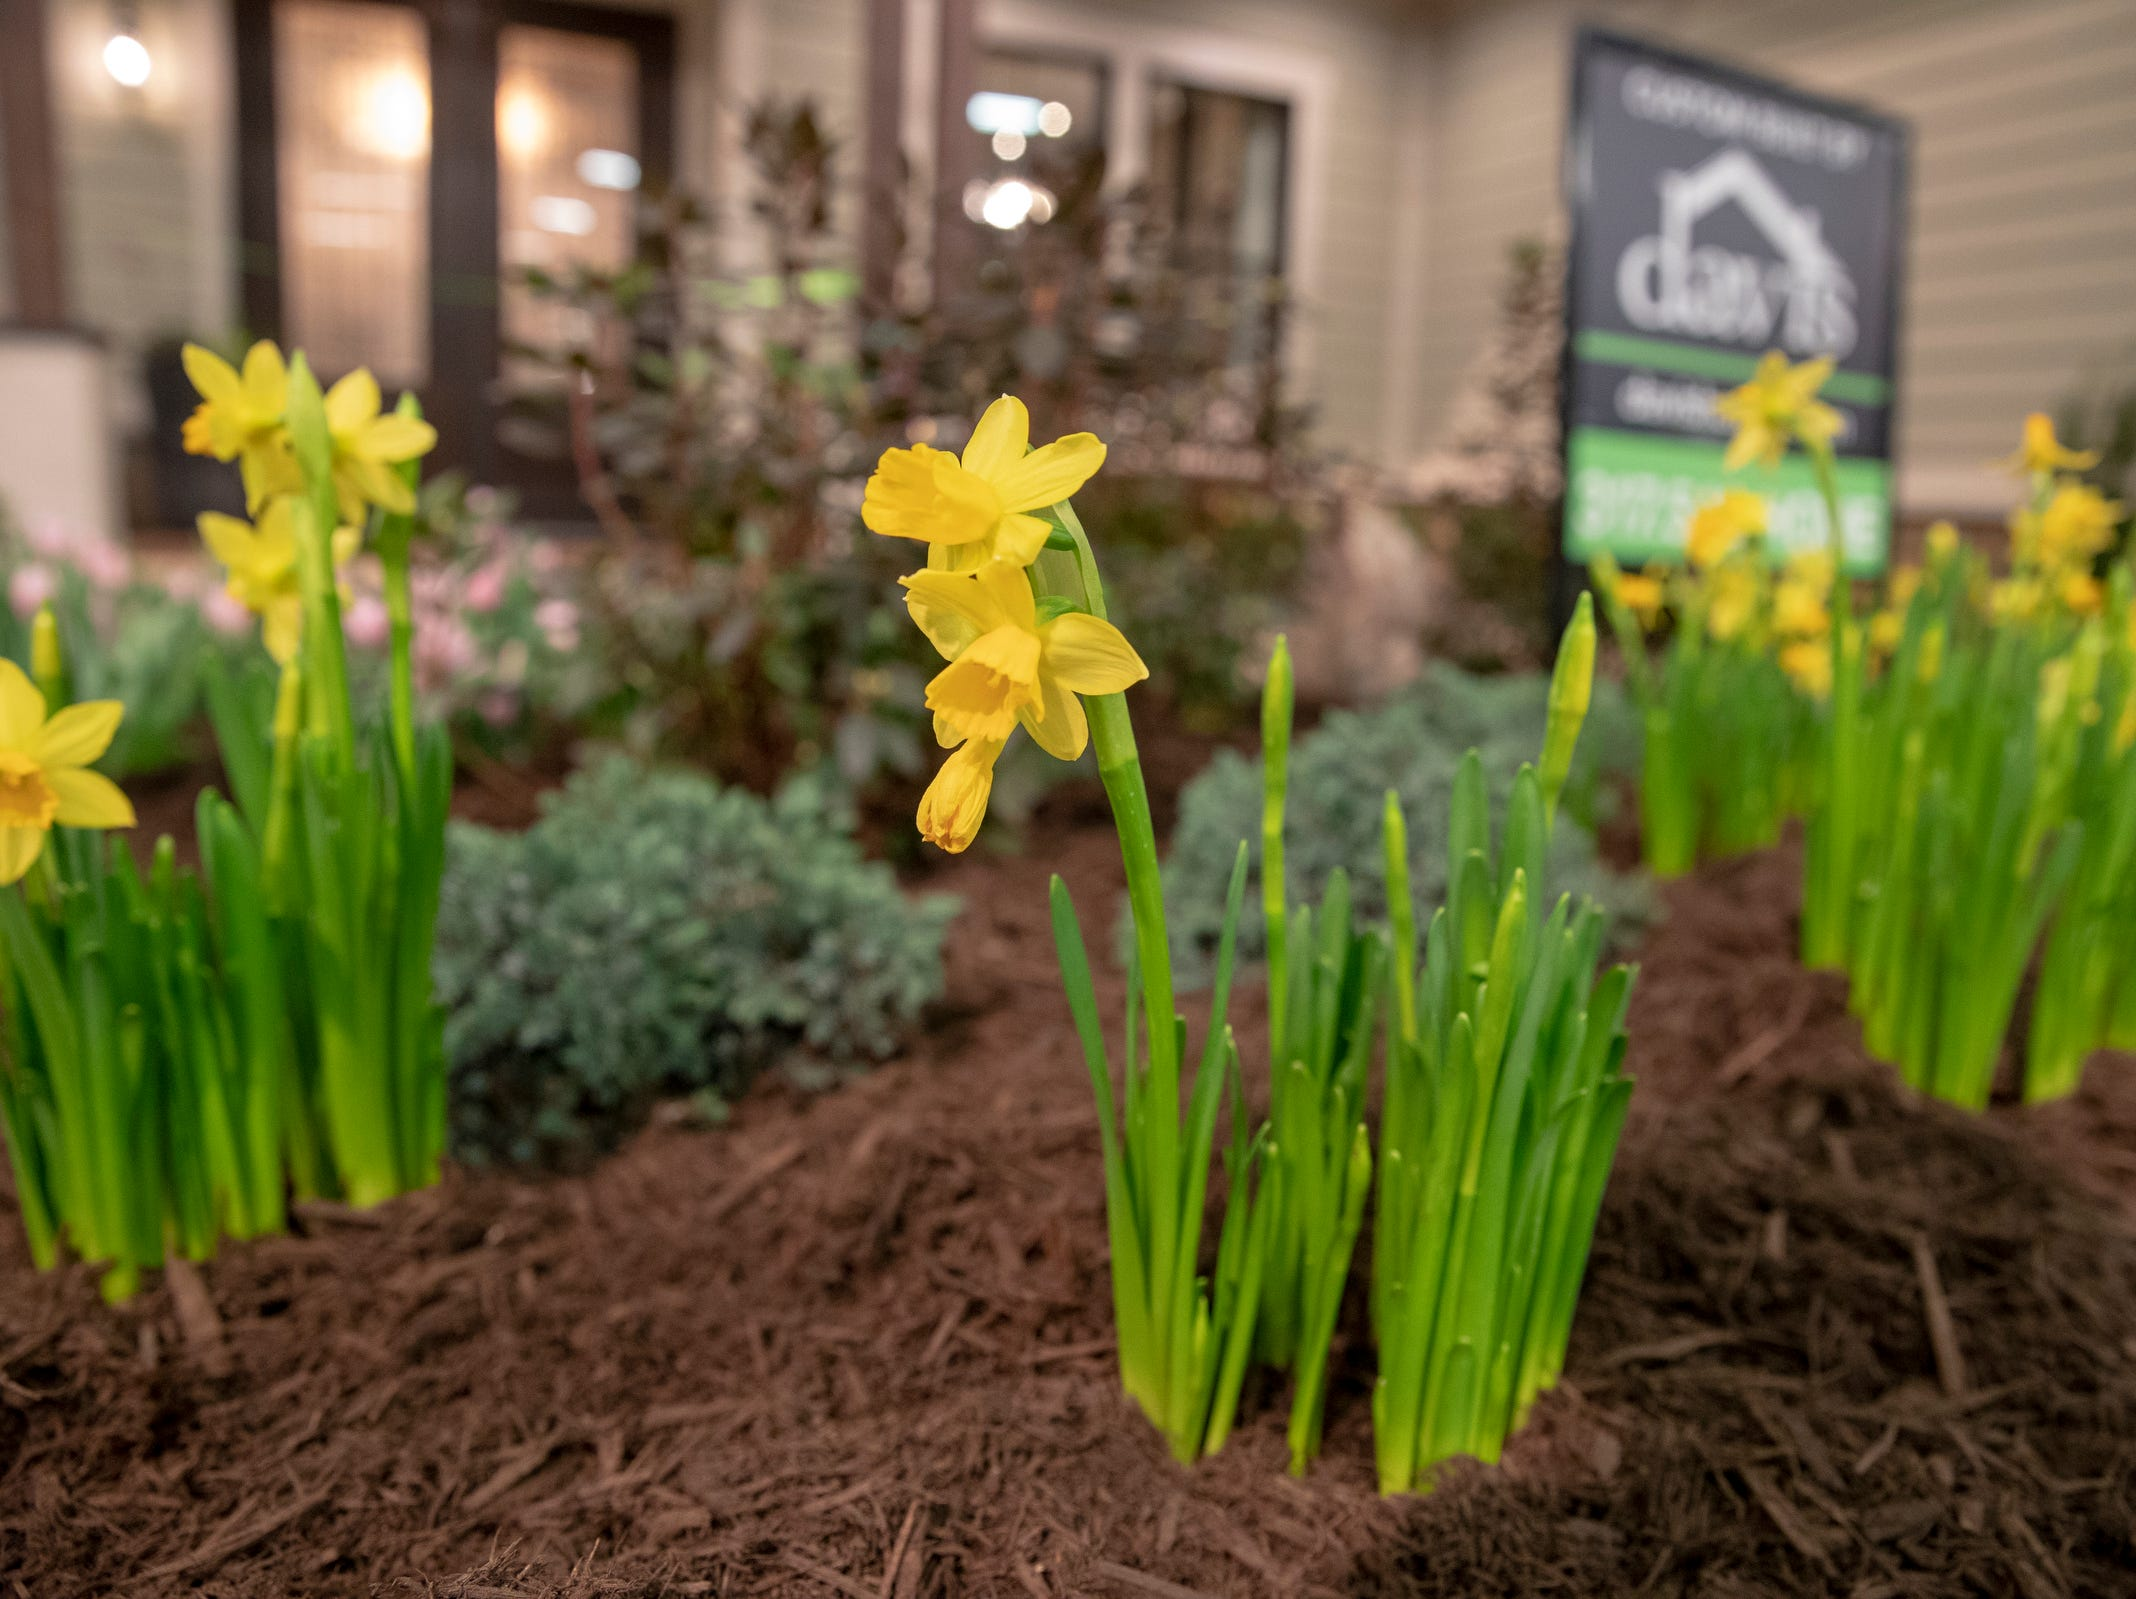 Centerpiece Home at the Indianapolis Home Show, Indiana State Fairgrounds, Indianapolis, Thursday, Jan. 17, 2018. The home, which is open through January 27 was built by Davis Homes, with an interior designed by Shelby Upchurch of Luxe Home Interiors, and landscaping by Calvin Landscape.